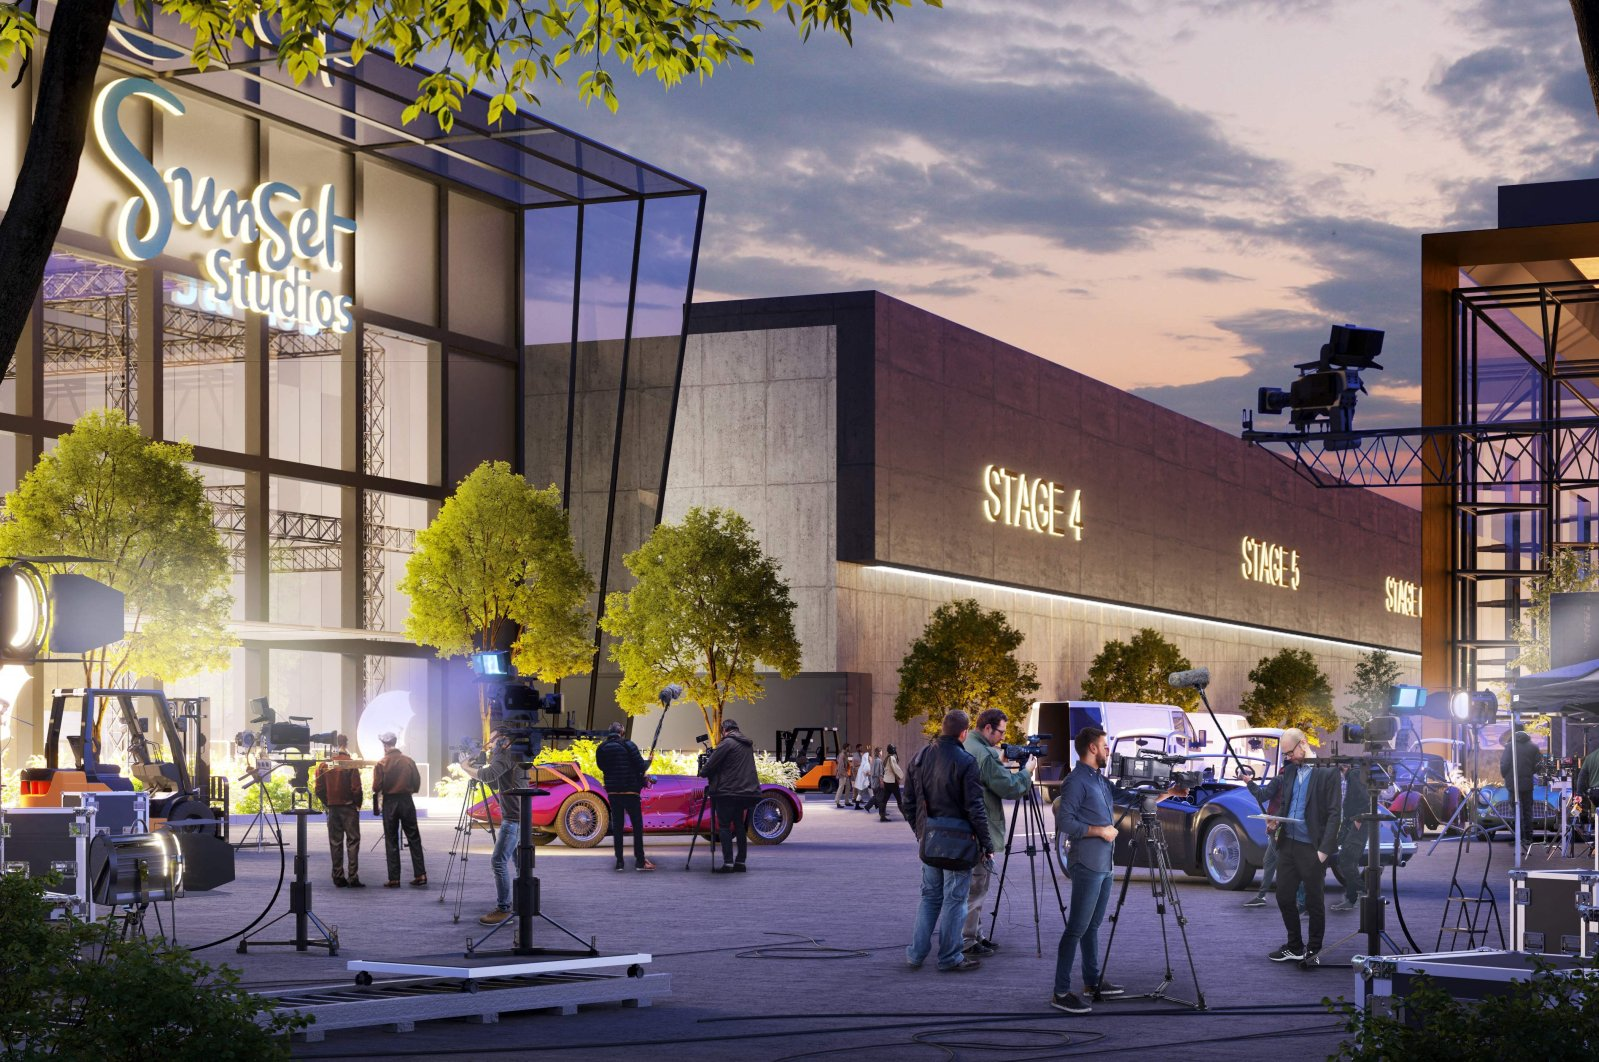 A handout artist's impression shows the proposed development of a new Sunset Studios center for film, TV and digital production in Broxbourne, north of London, U.K., Aug. 2, 2021. (Blackstone via AFP)